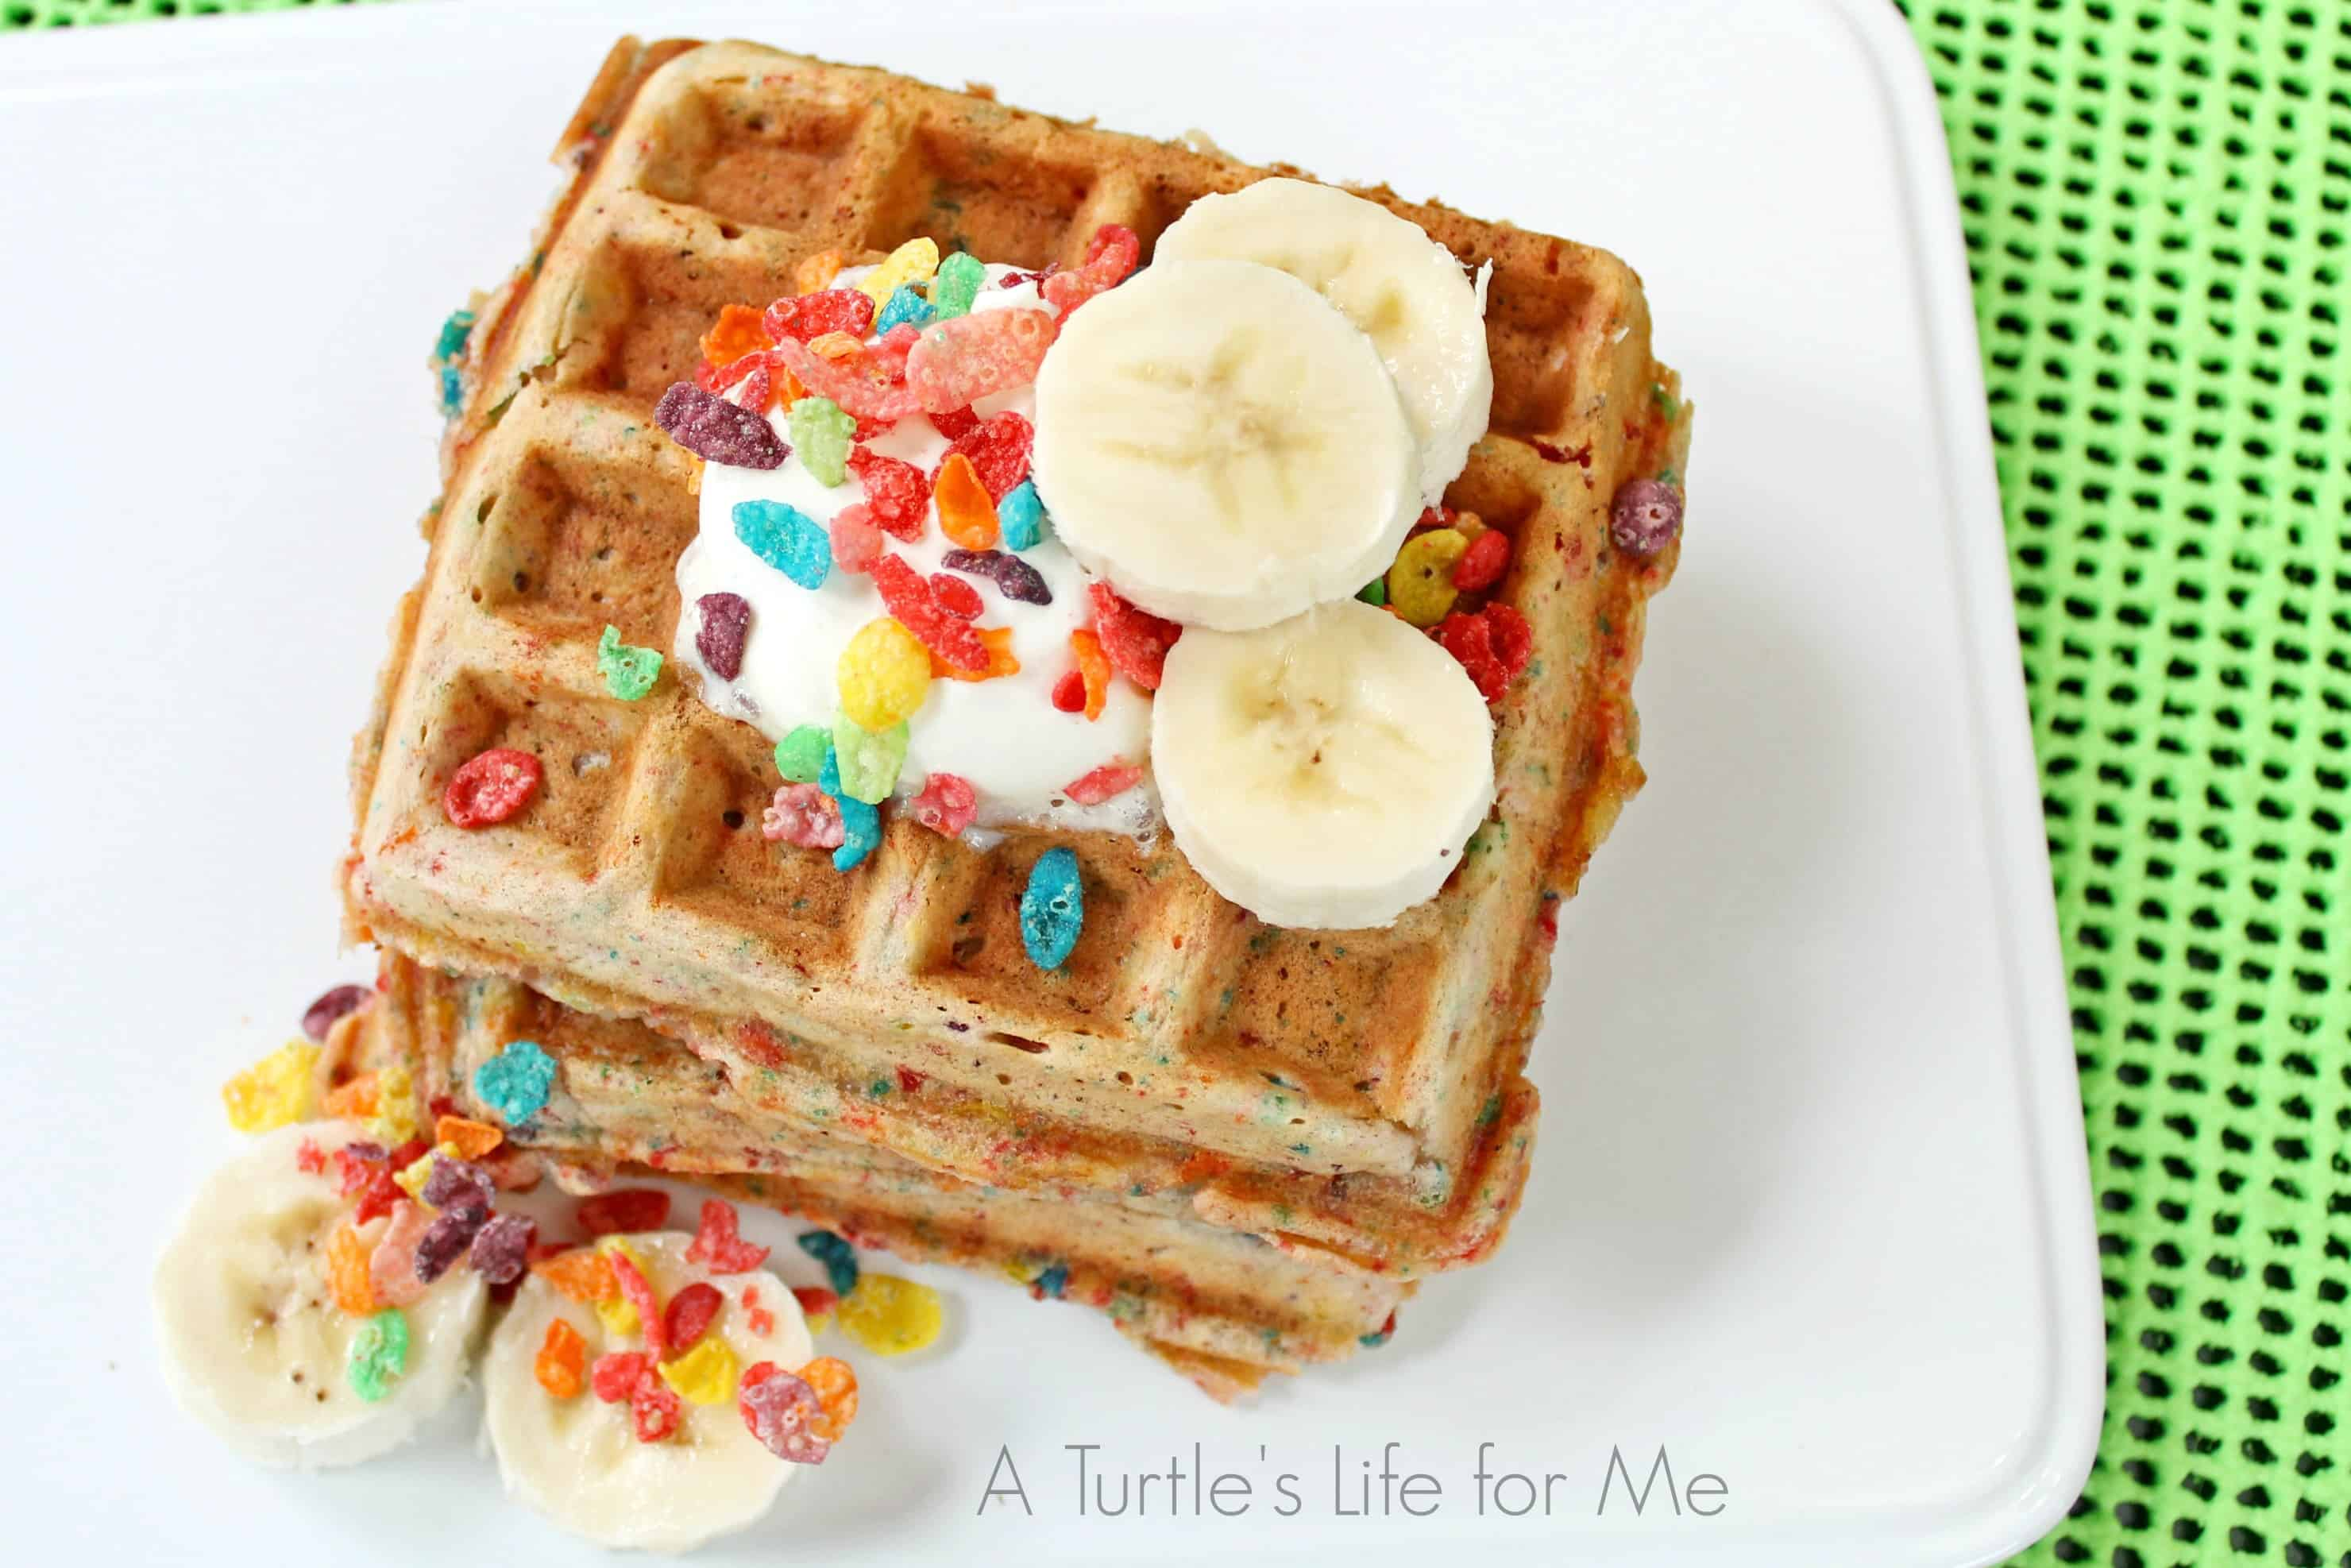 Fruity pebbles banana waffles recipe a turtle 39 s life for me for Fruity pebbles alcoholic drink